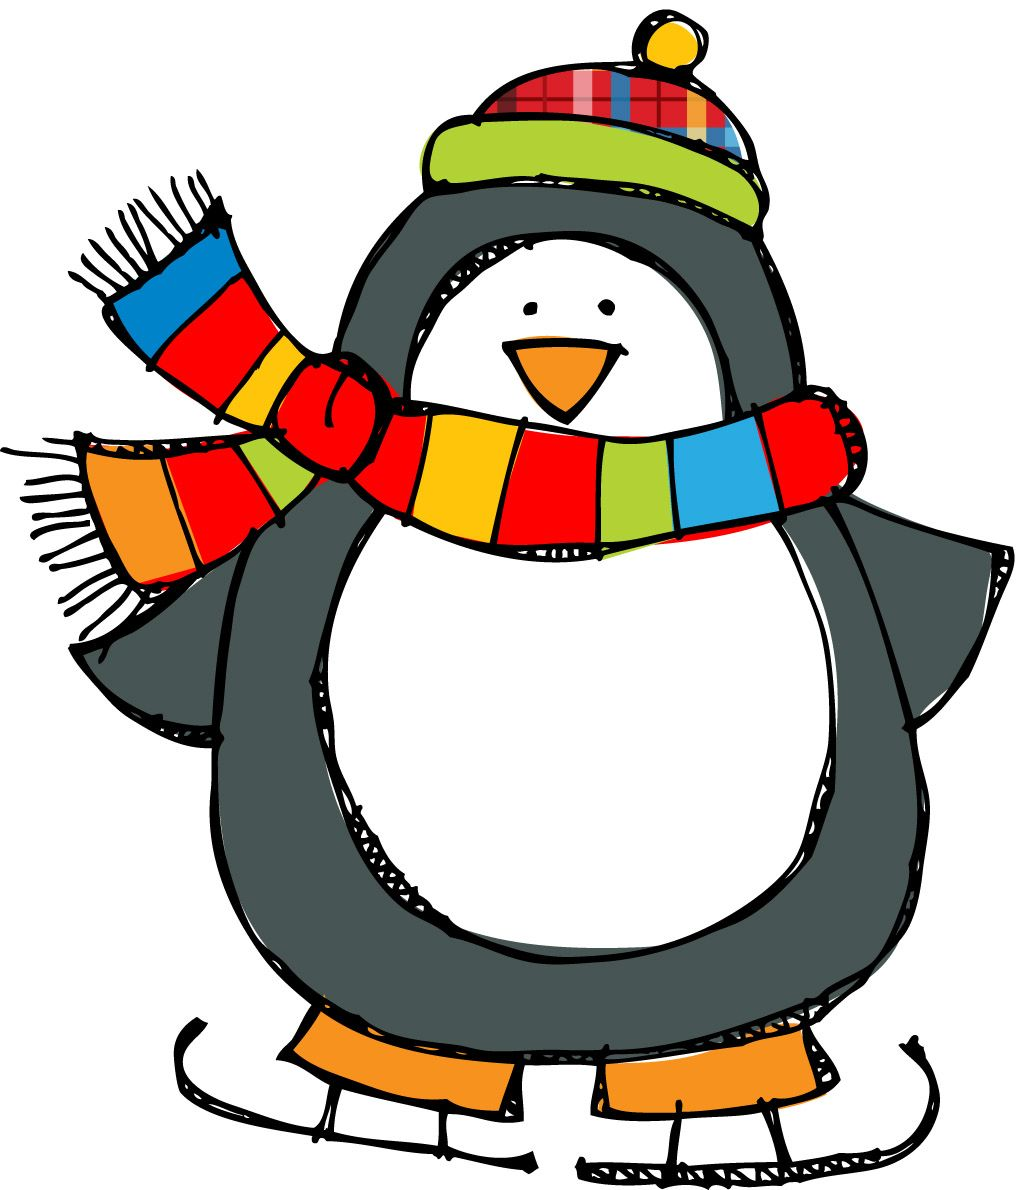 Clipart of penguins free. Penguin clip art printable vector royalty free stock